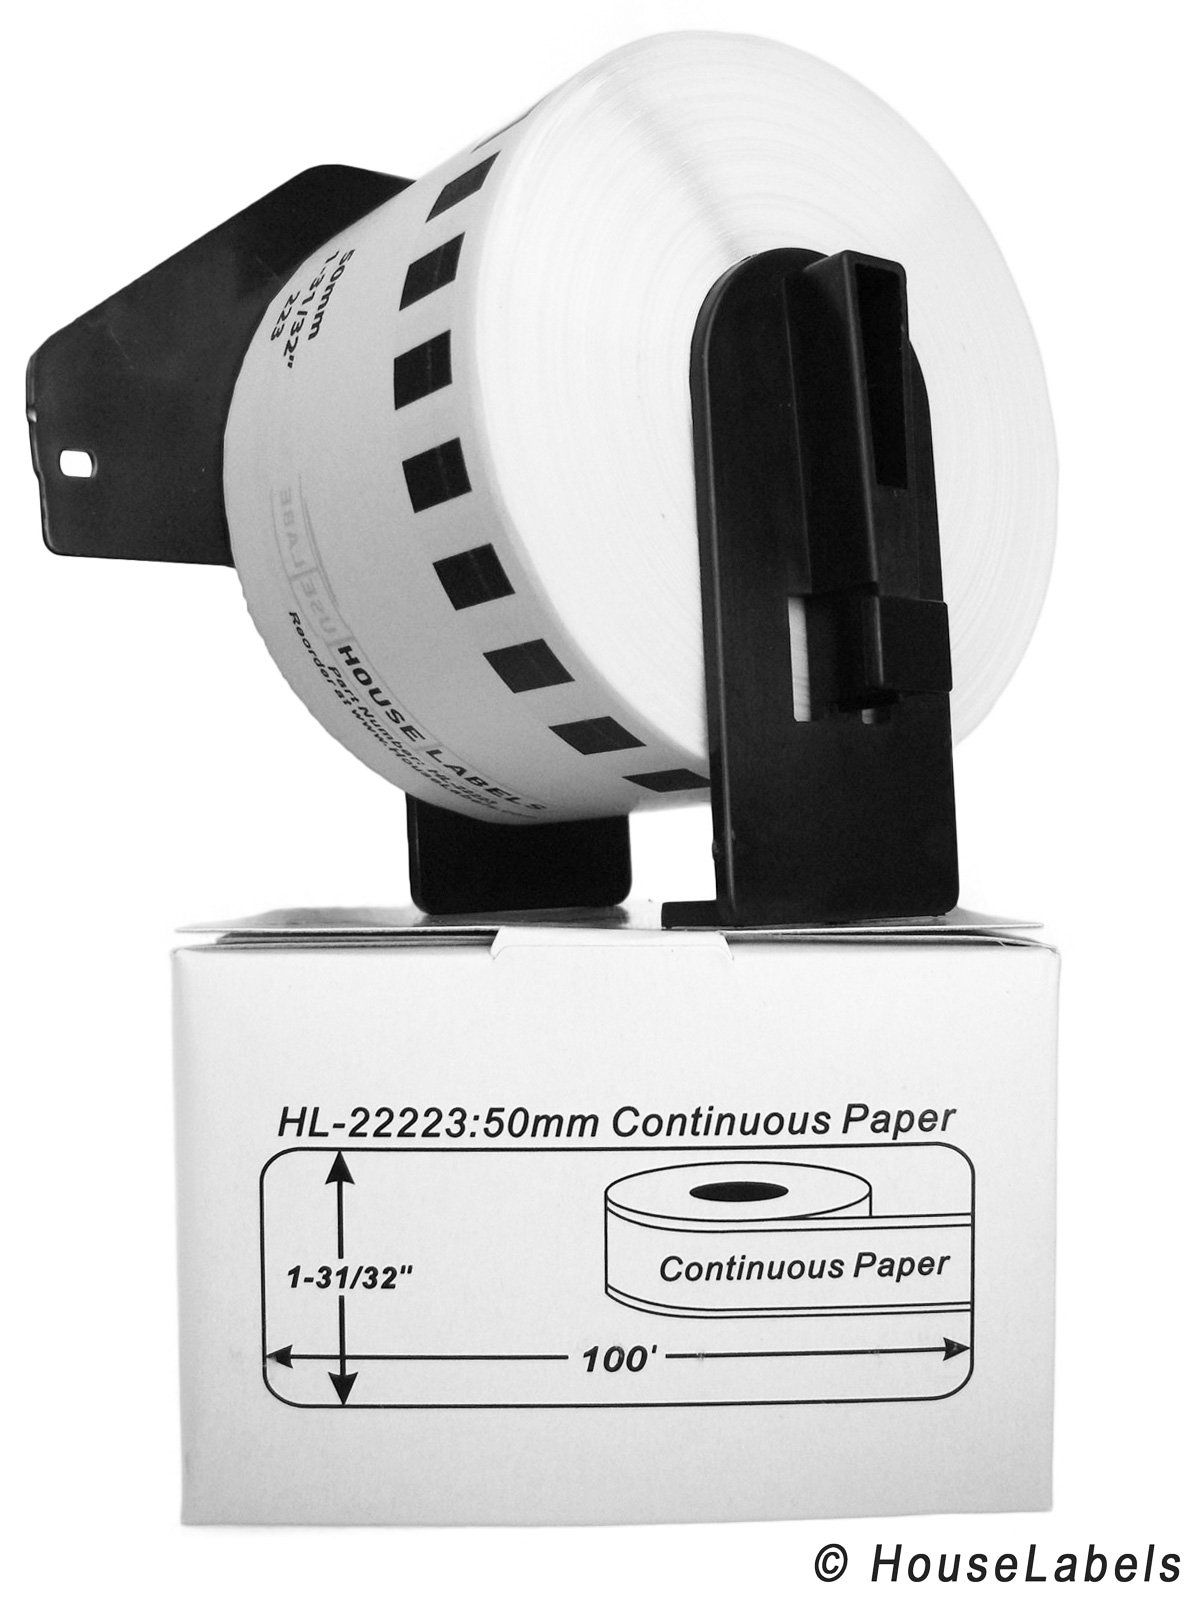 4 Rolls; Continuous Paper, BROTHER-Compatible DK-2223 Continuous Paper Labels with ONE (1) reusable cartridge (1-31/32'' x 100'; 50mm30.48m) -- BPA Free!